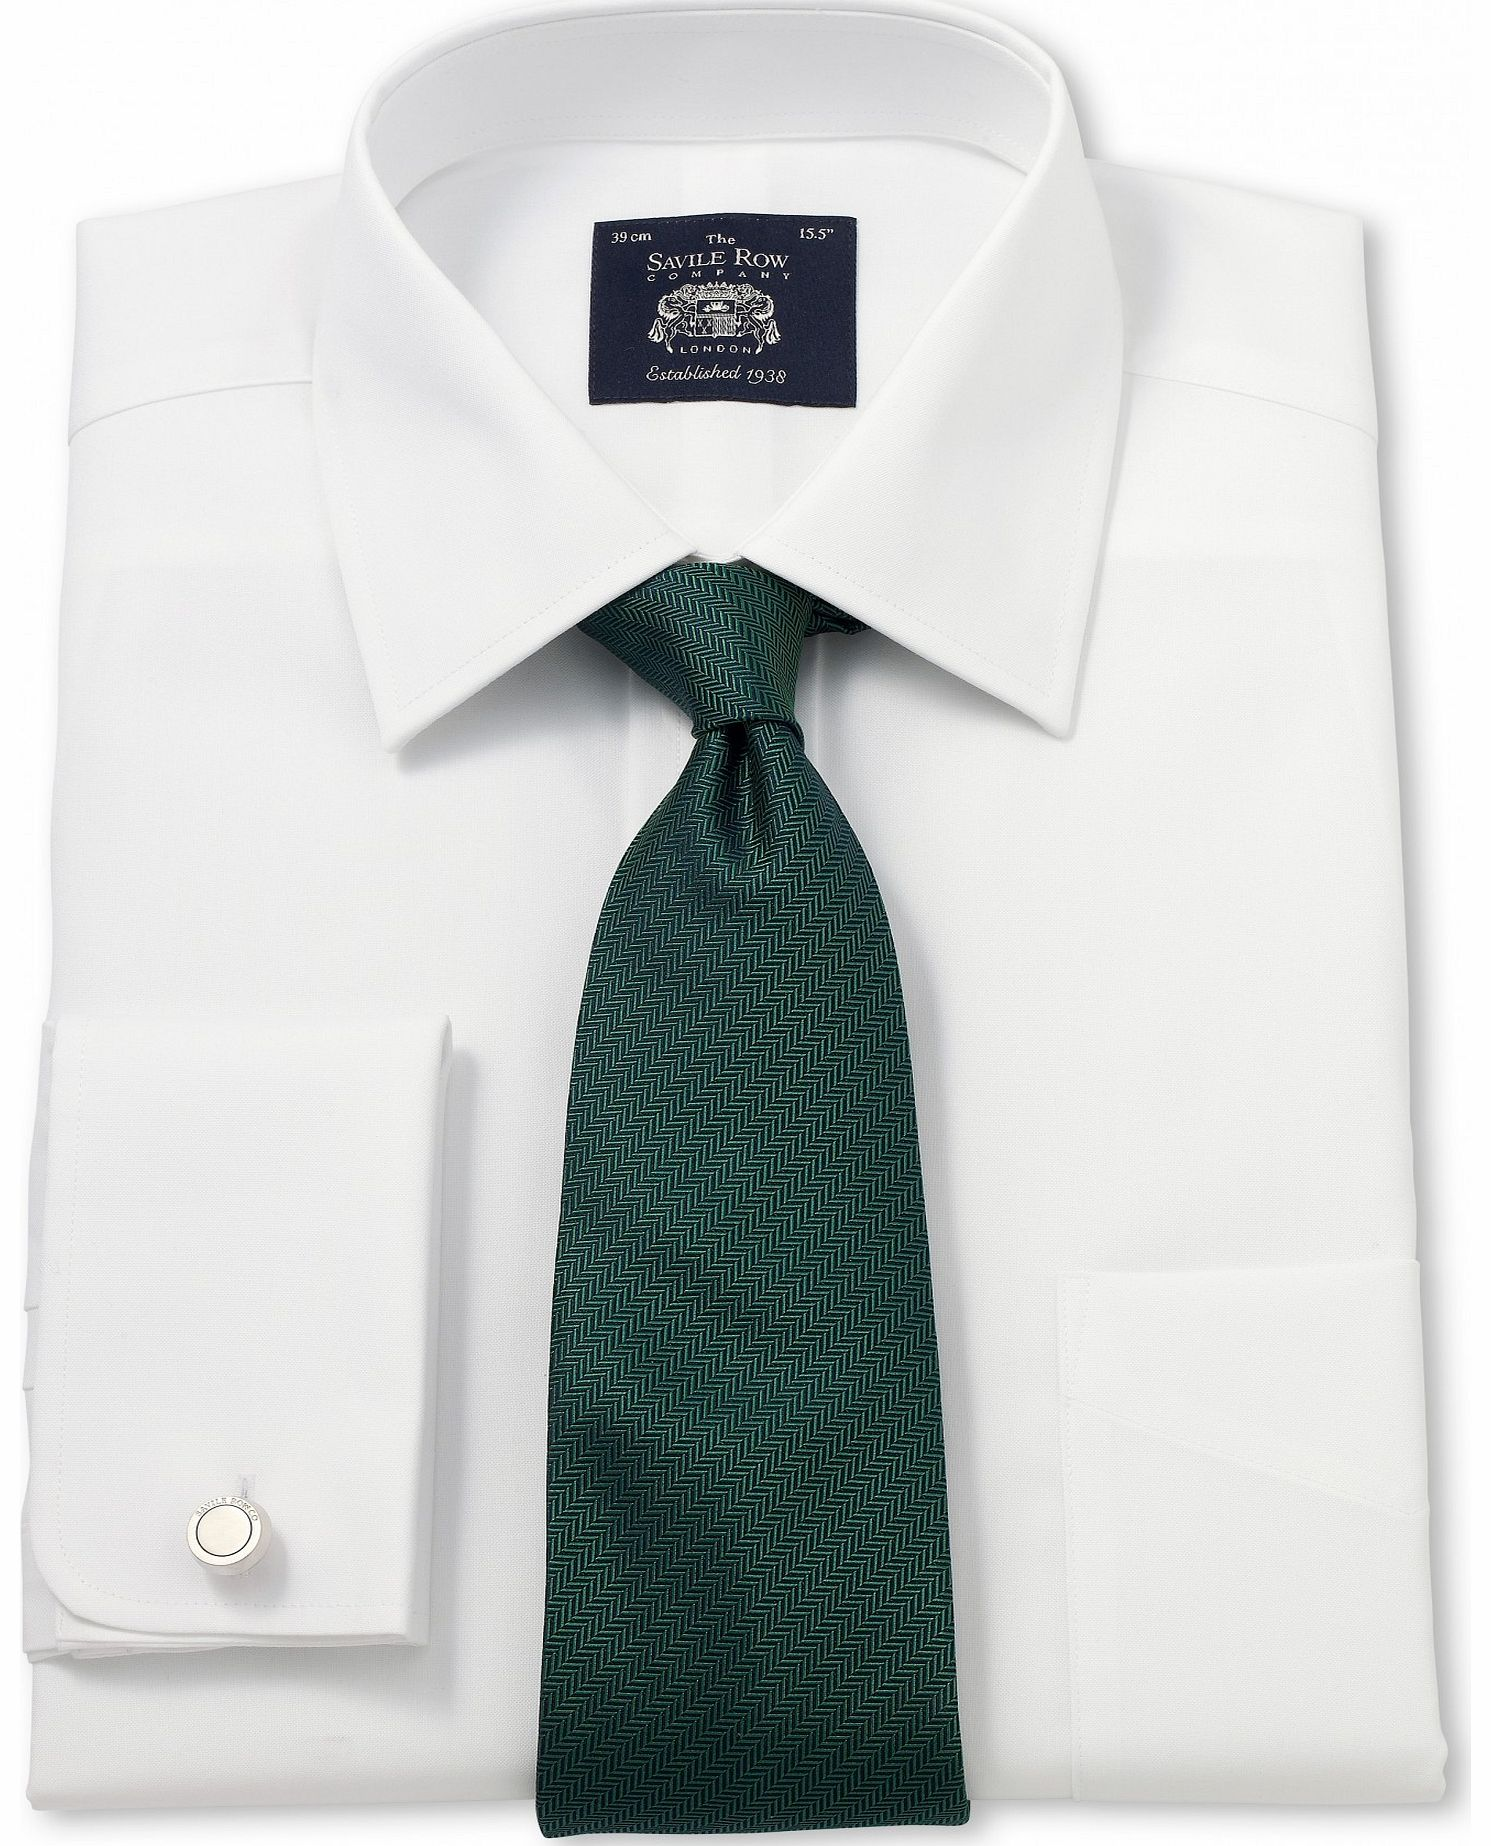 Savile Row Company White Non-Iron Classic Fit Shirt 16 1/2`` Double product image